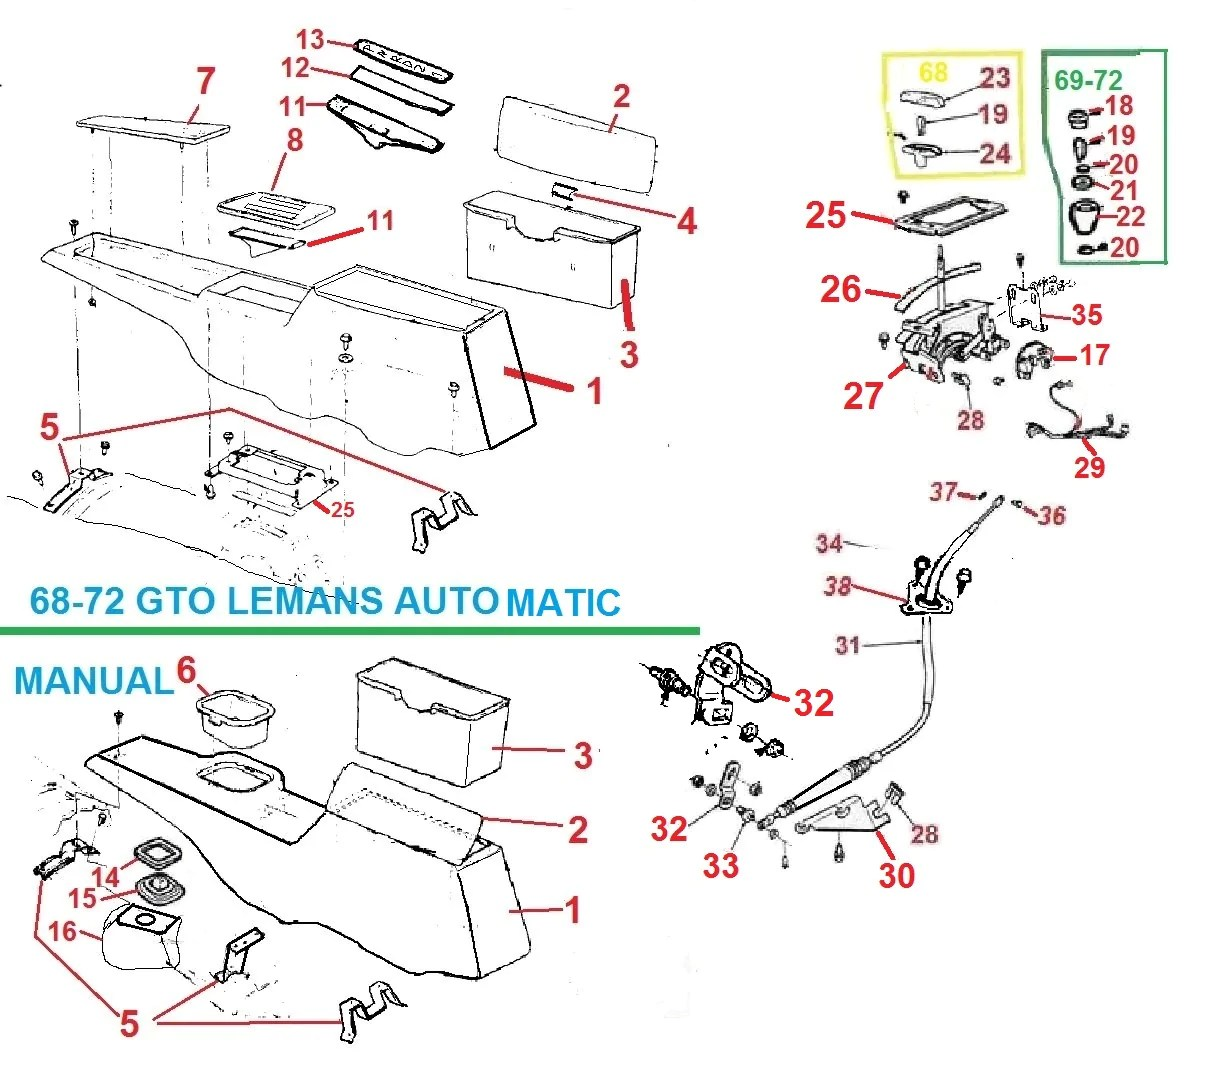 small resolution of 68 72 gto console parts